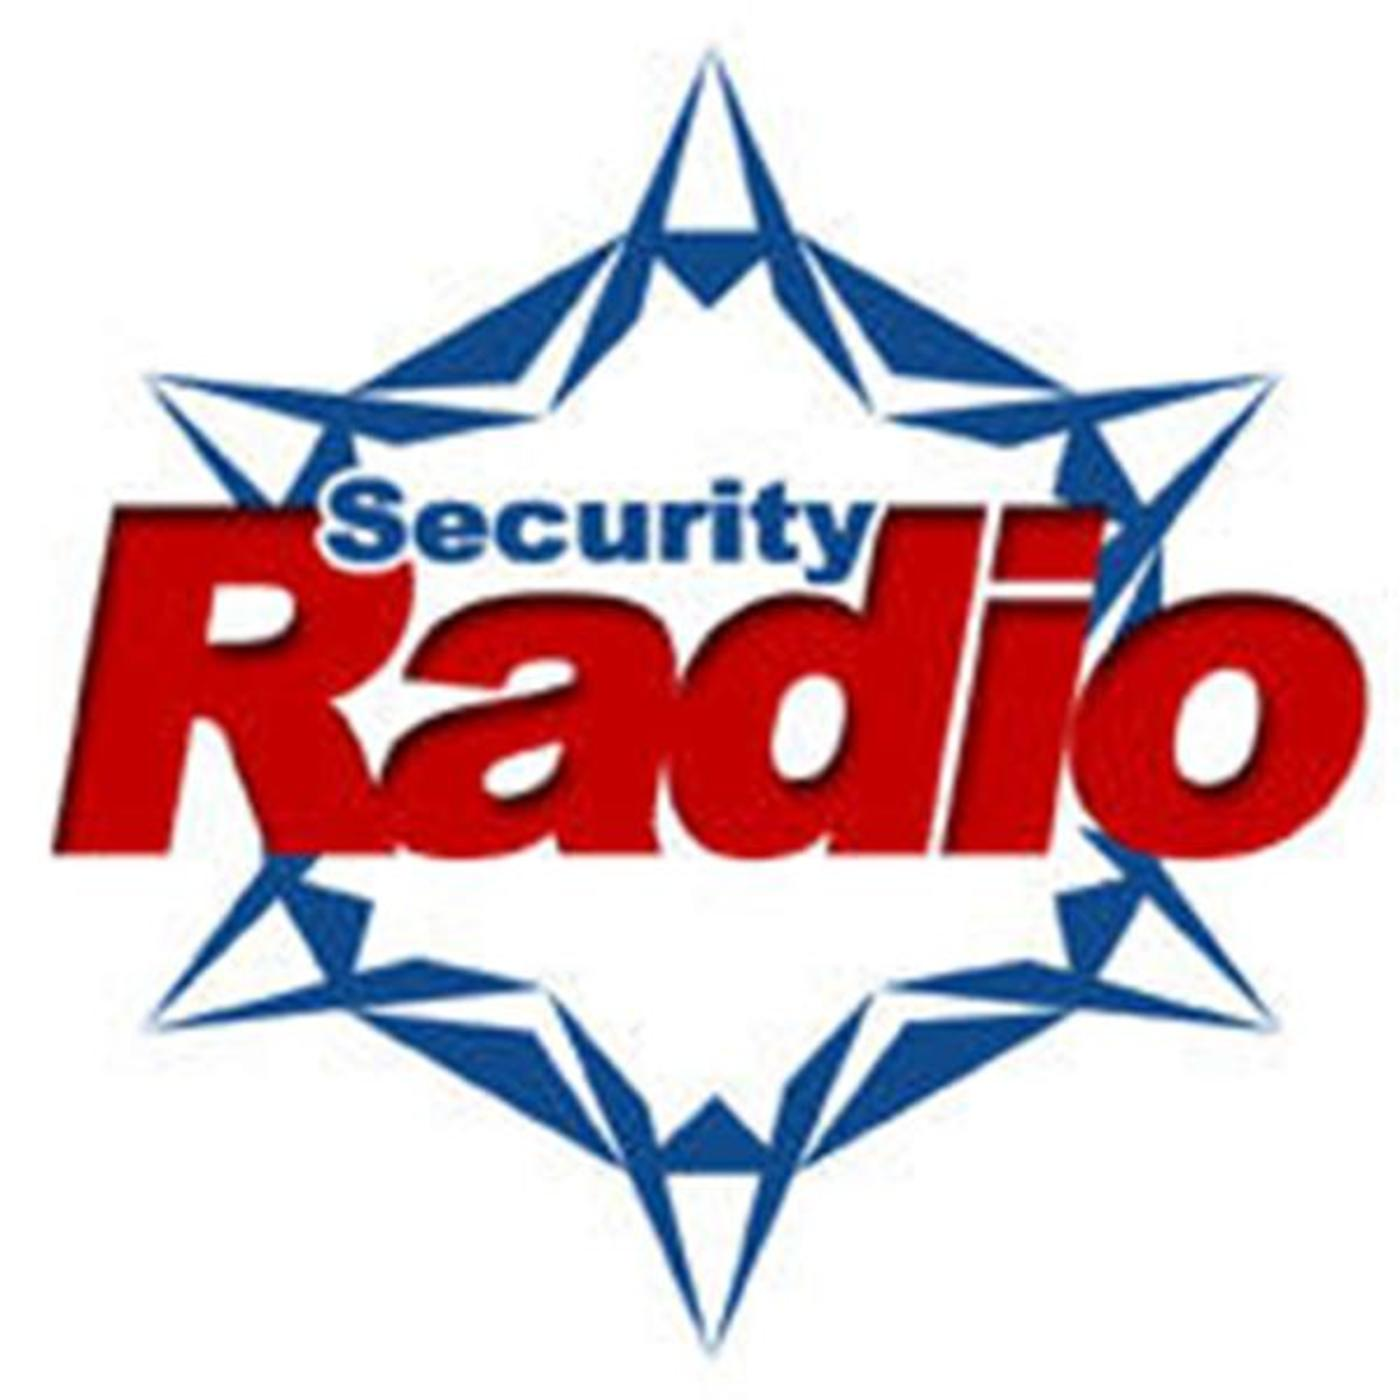 Security Radio